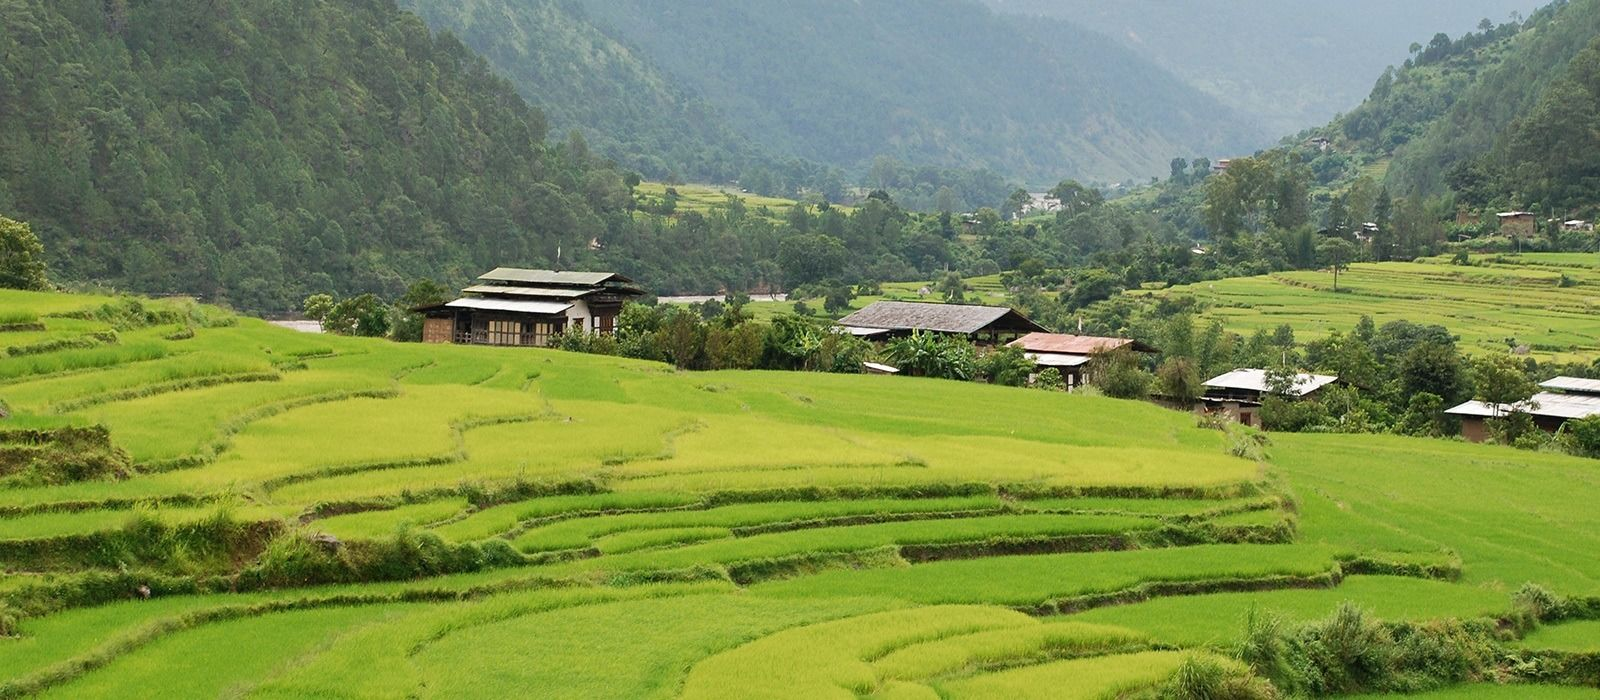 Nepal: Cultural, Scenic & Rugged Wonders Tour Trip 7